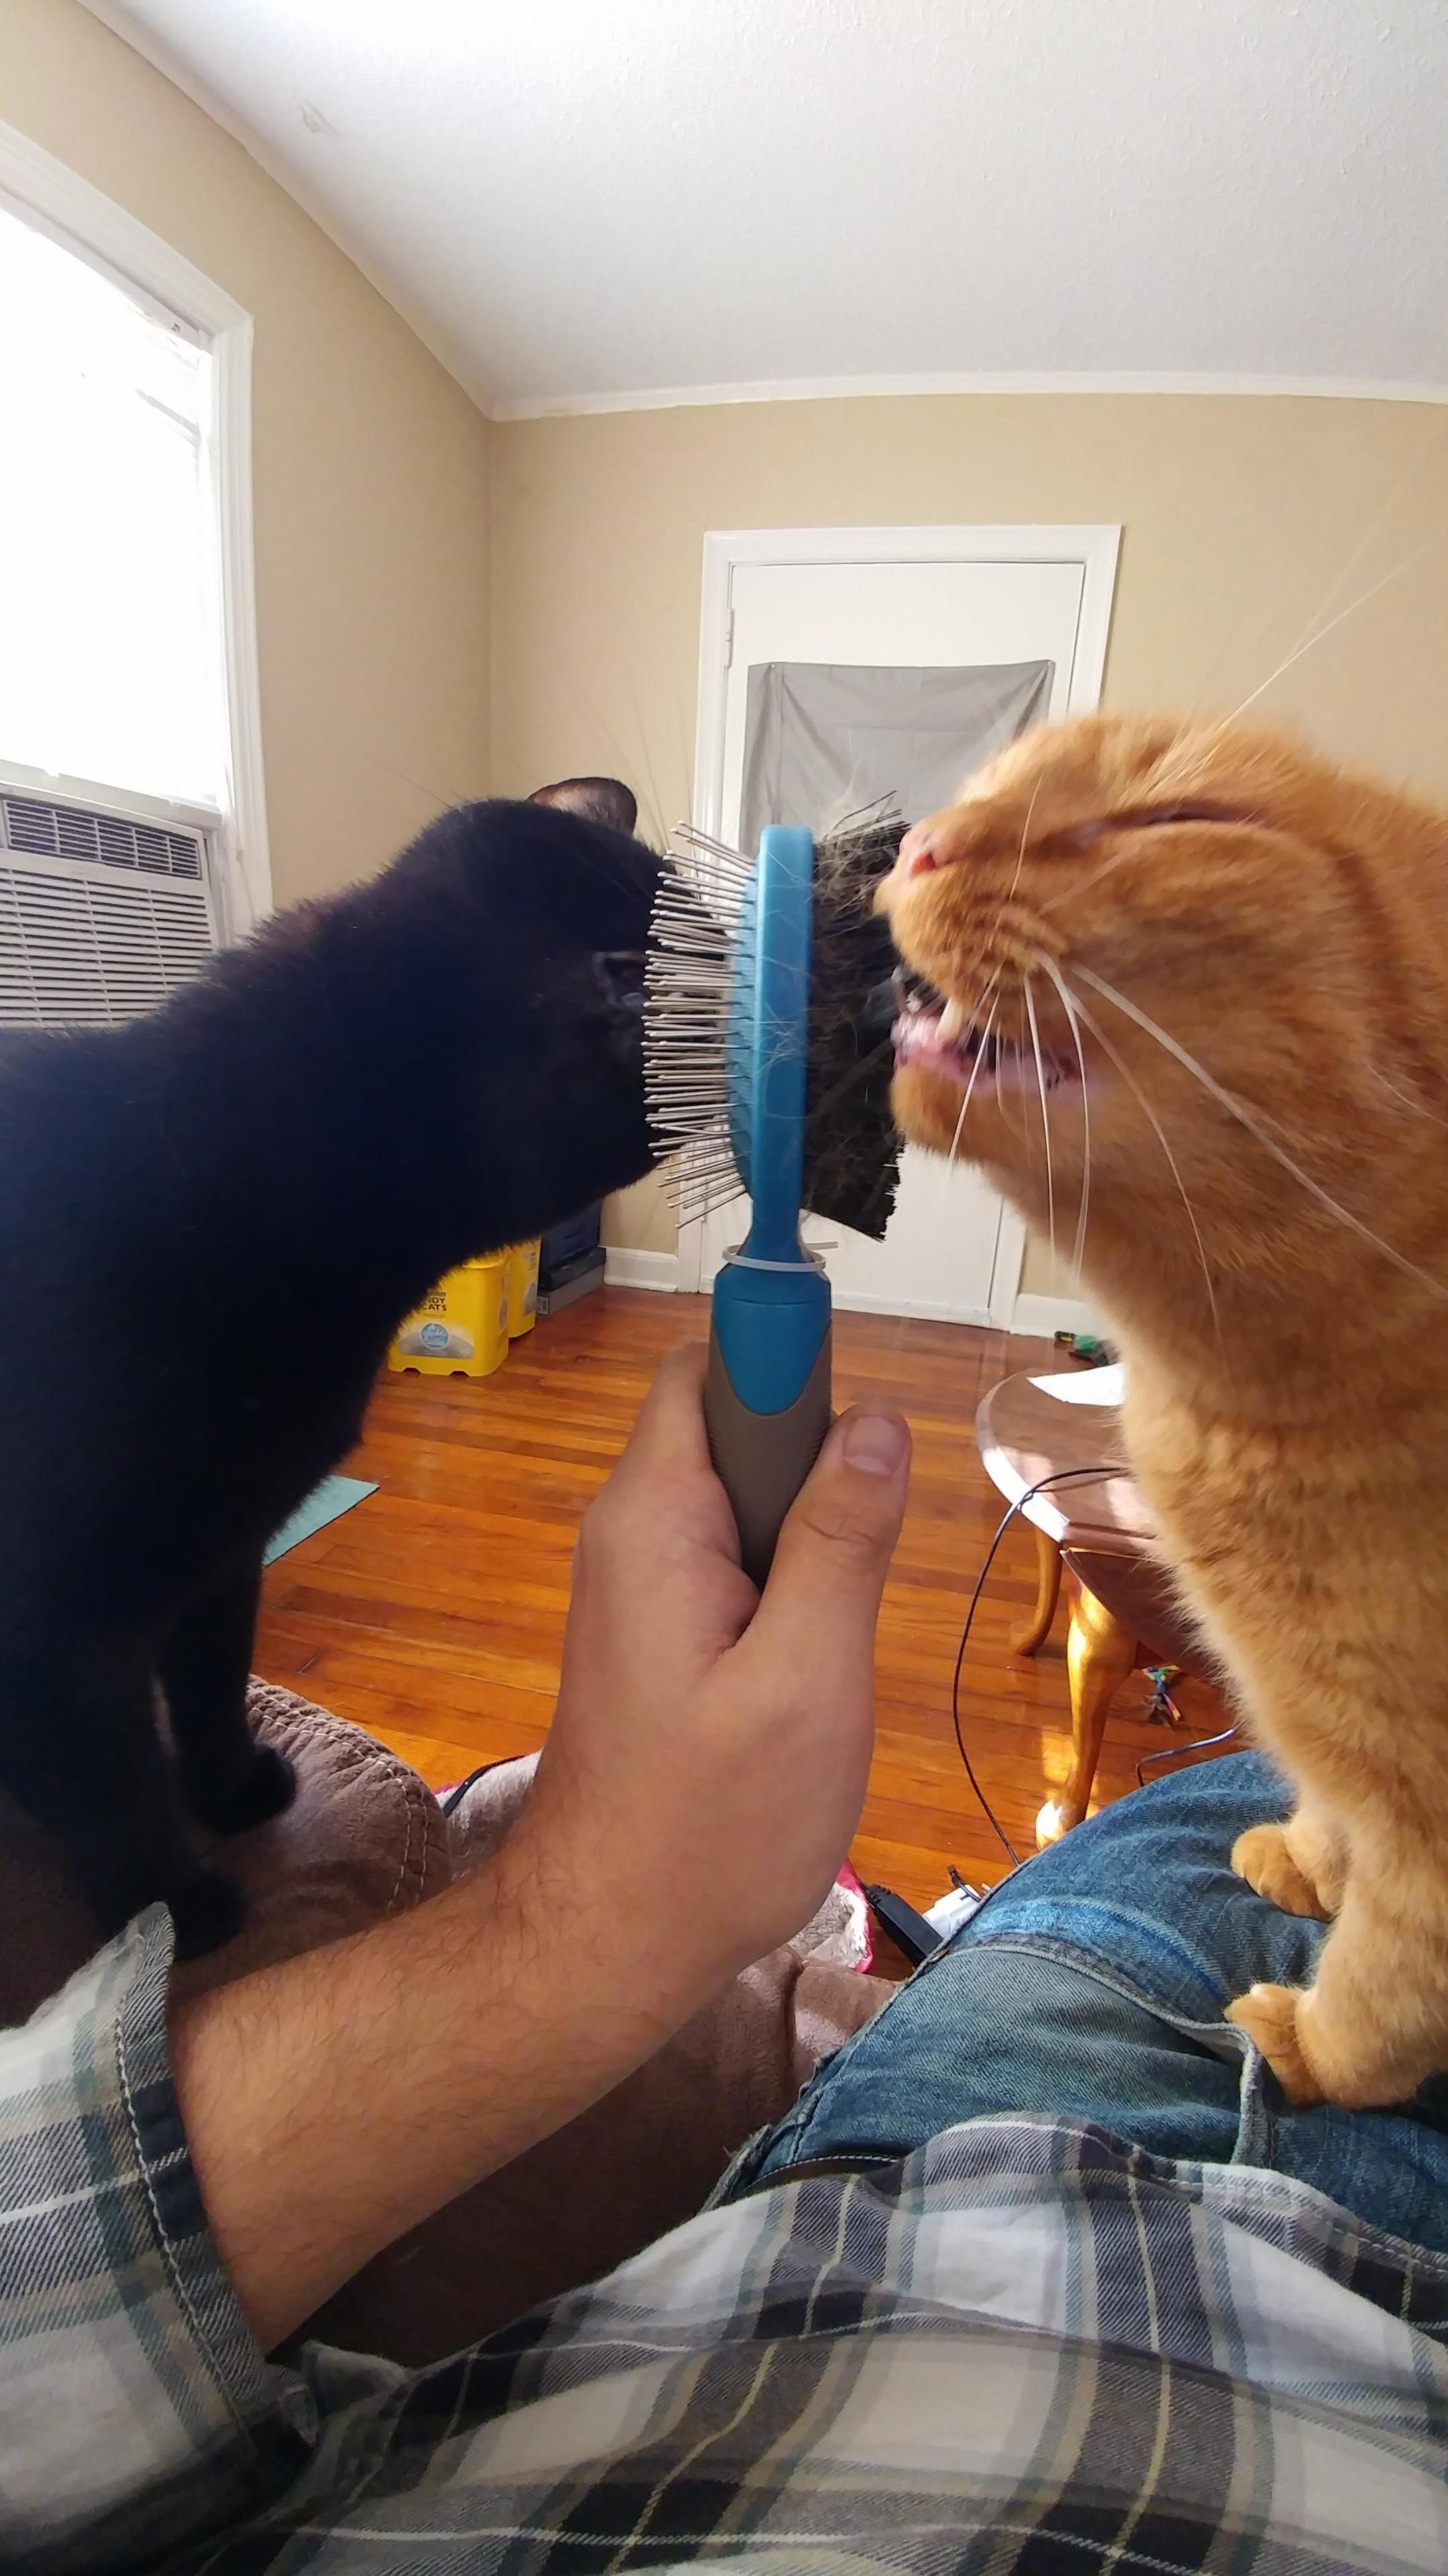 Apparently this is the correct way to use a brush